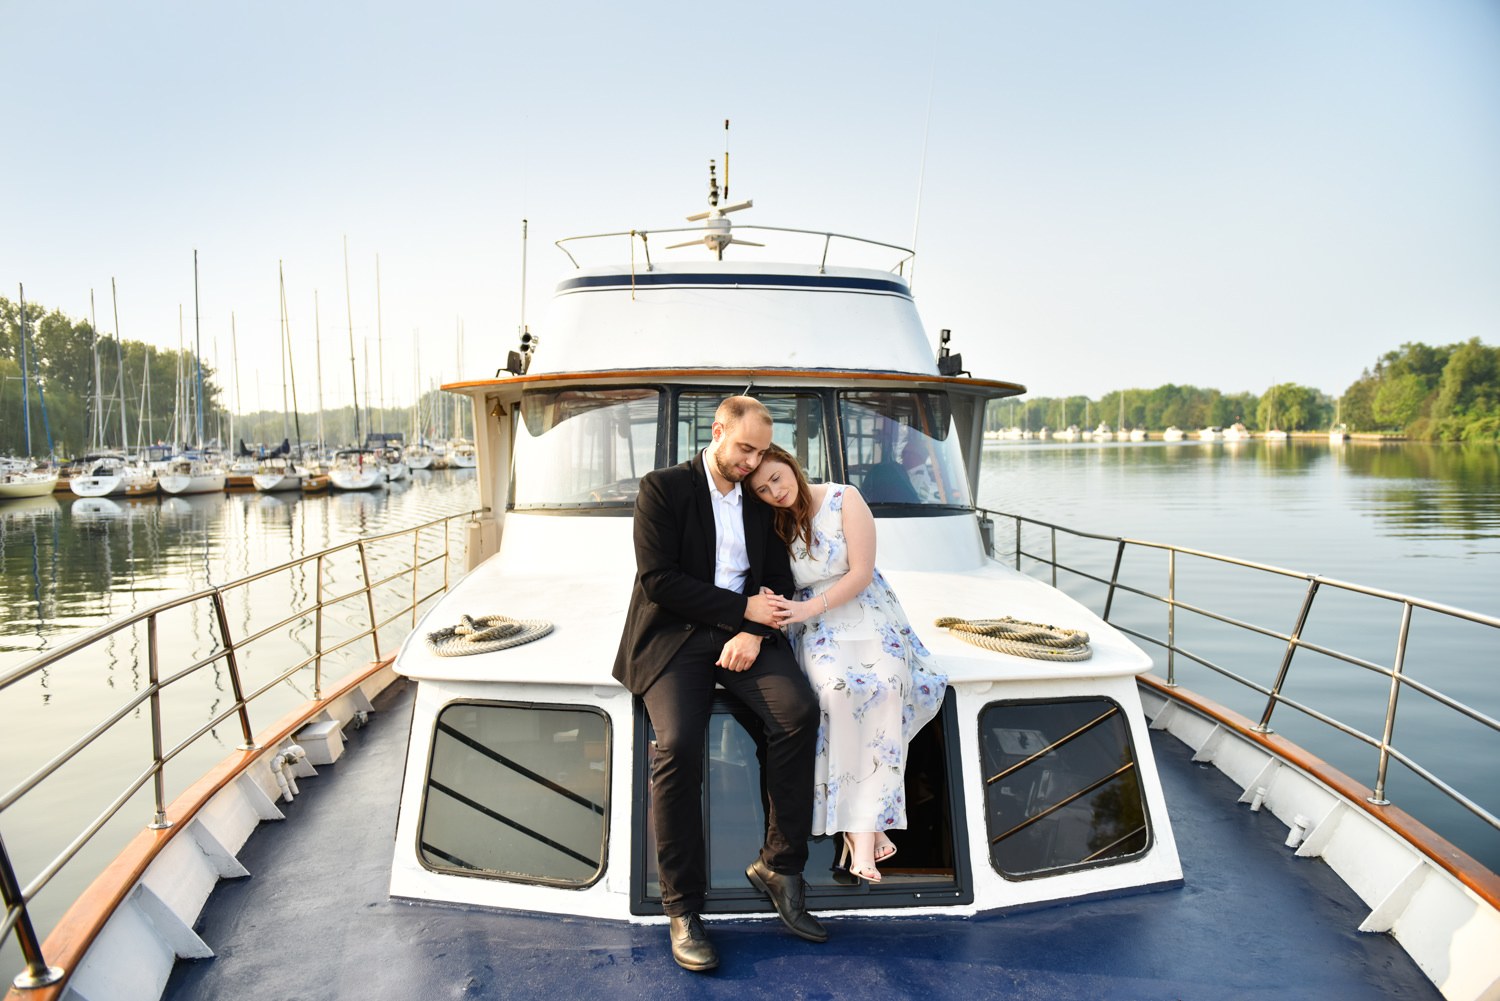 Sunrise romantic/yacht-engagement-photos Toronto Harbor